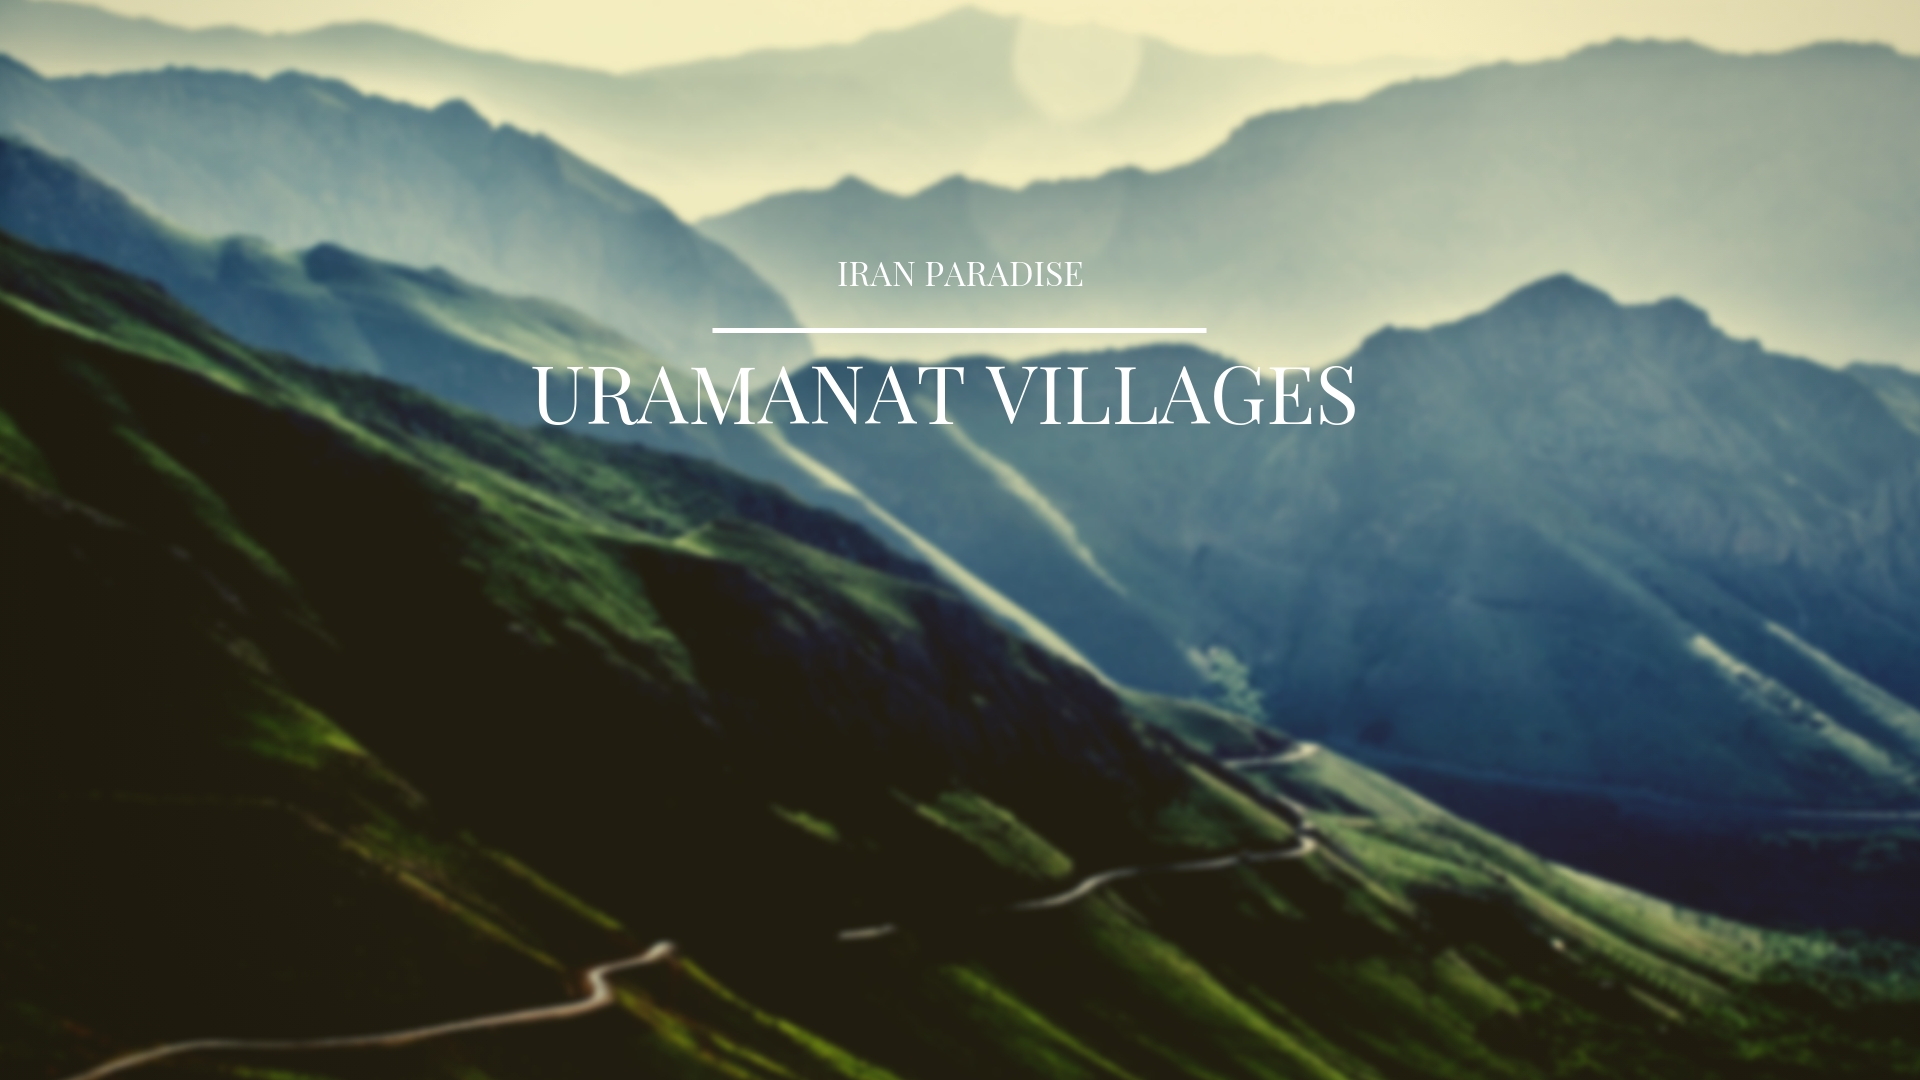 Uramanat Villages